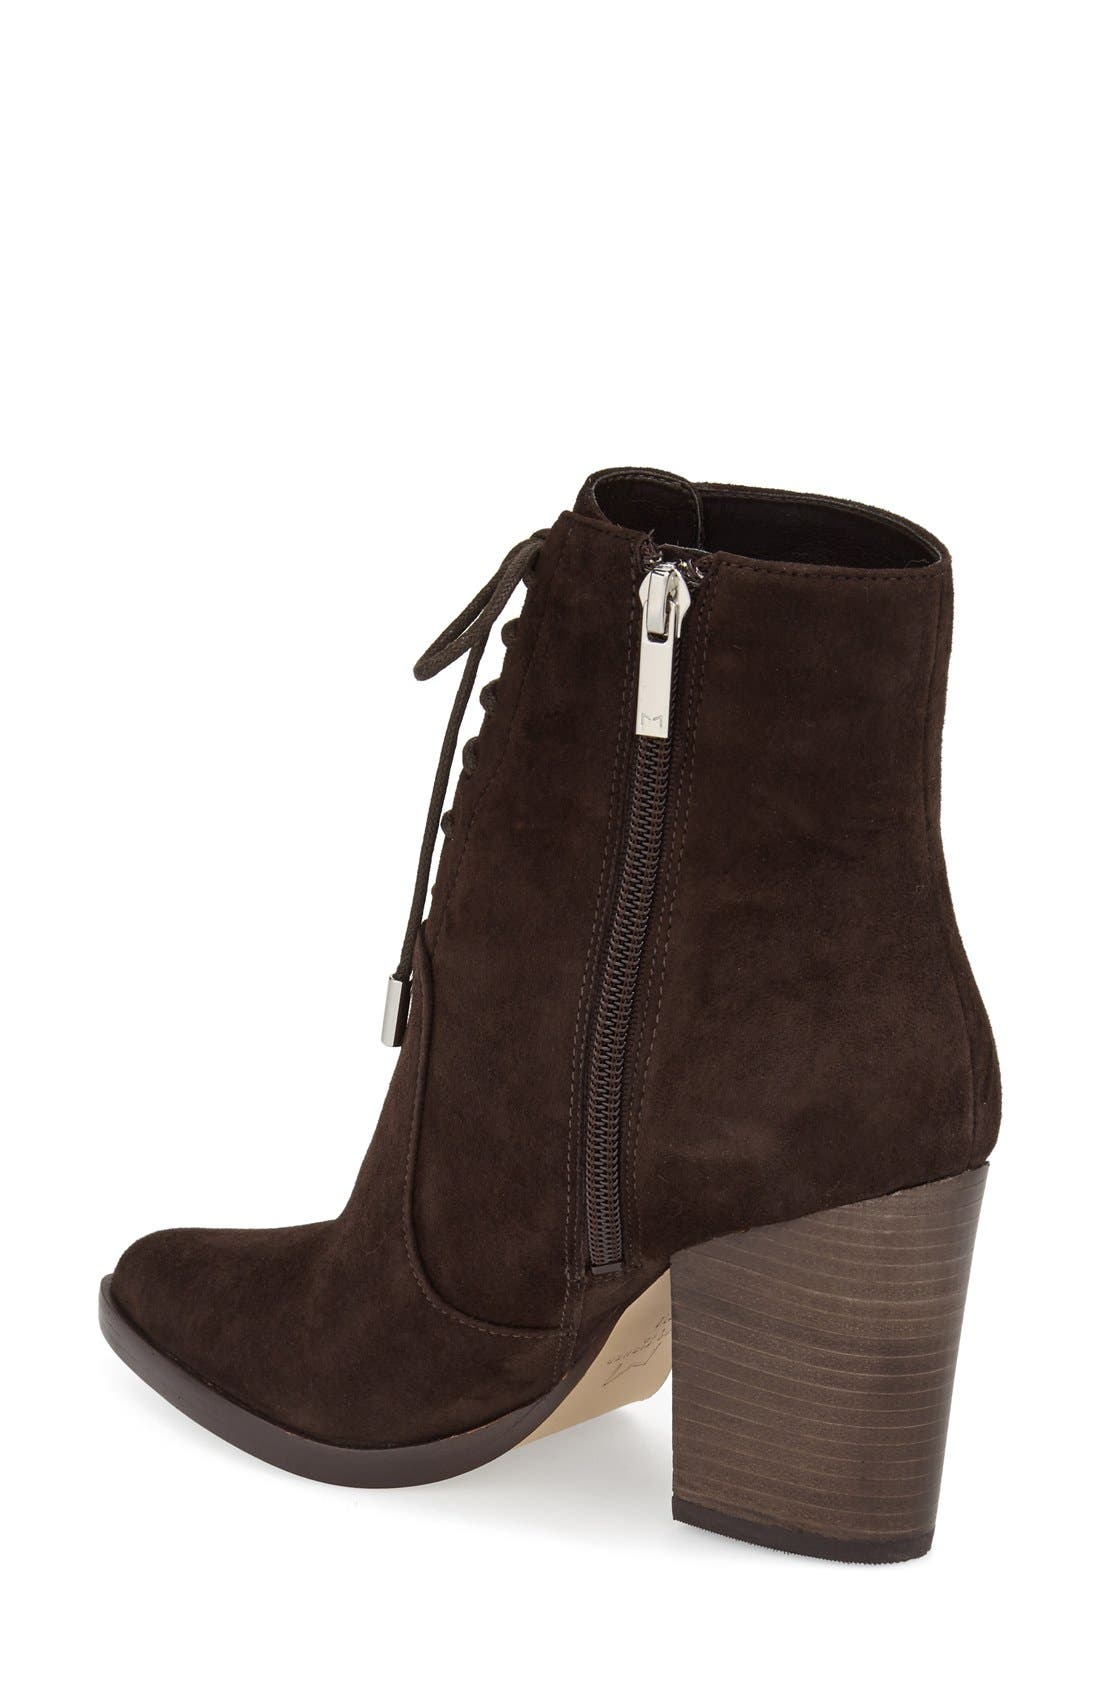 Alternate Image 2  - Marc Fisher LTD Aaliyah Pointy Toe Lace-Up Bootie (Women)